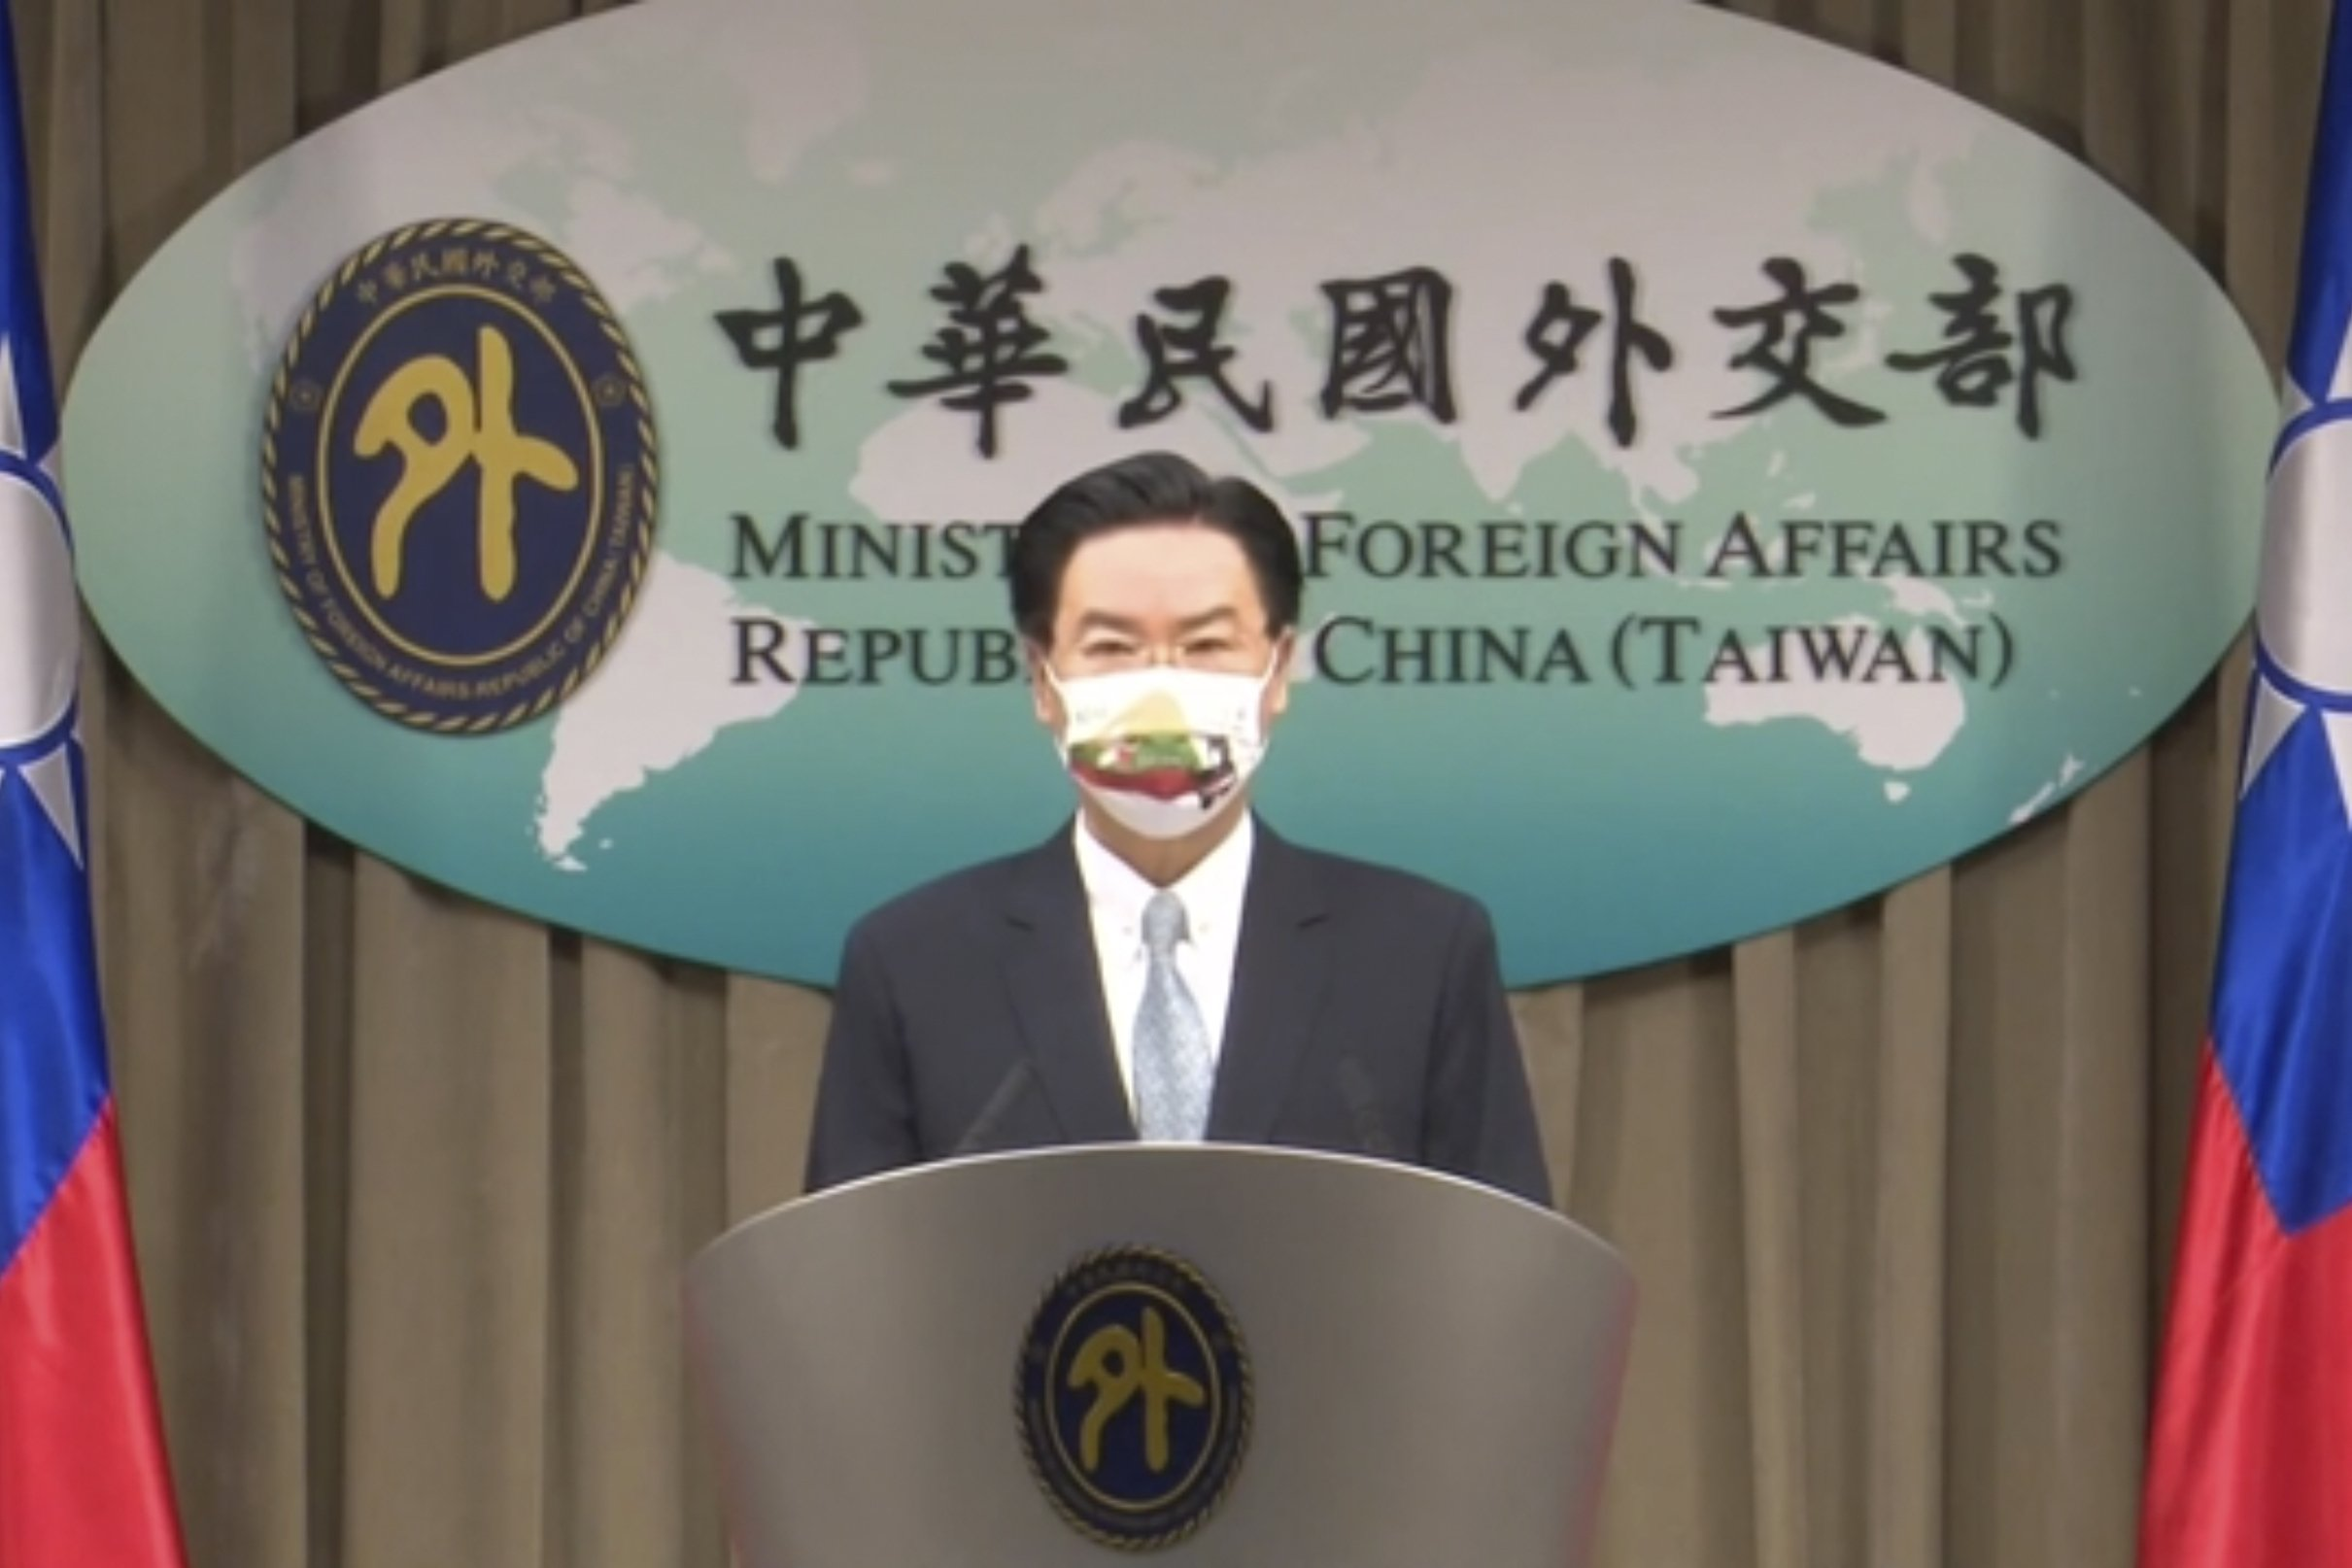 In this grab from video footage run by Taiwan's Ministry of Foreign Affairs via AP Video, Taiwan Foreign Minister Joseph Wu, speaks about exchanging representative offices with Lithuania during a press briefing in Taipei, Taiwan, July 20, 2021. (AP Photo)